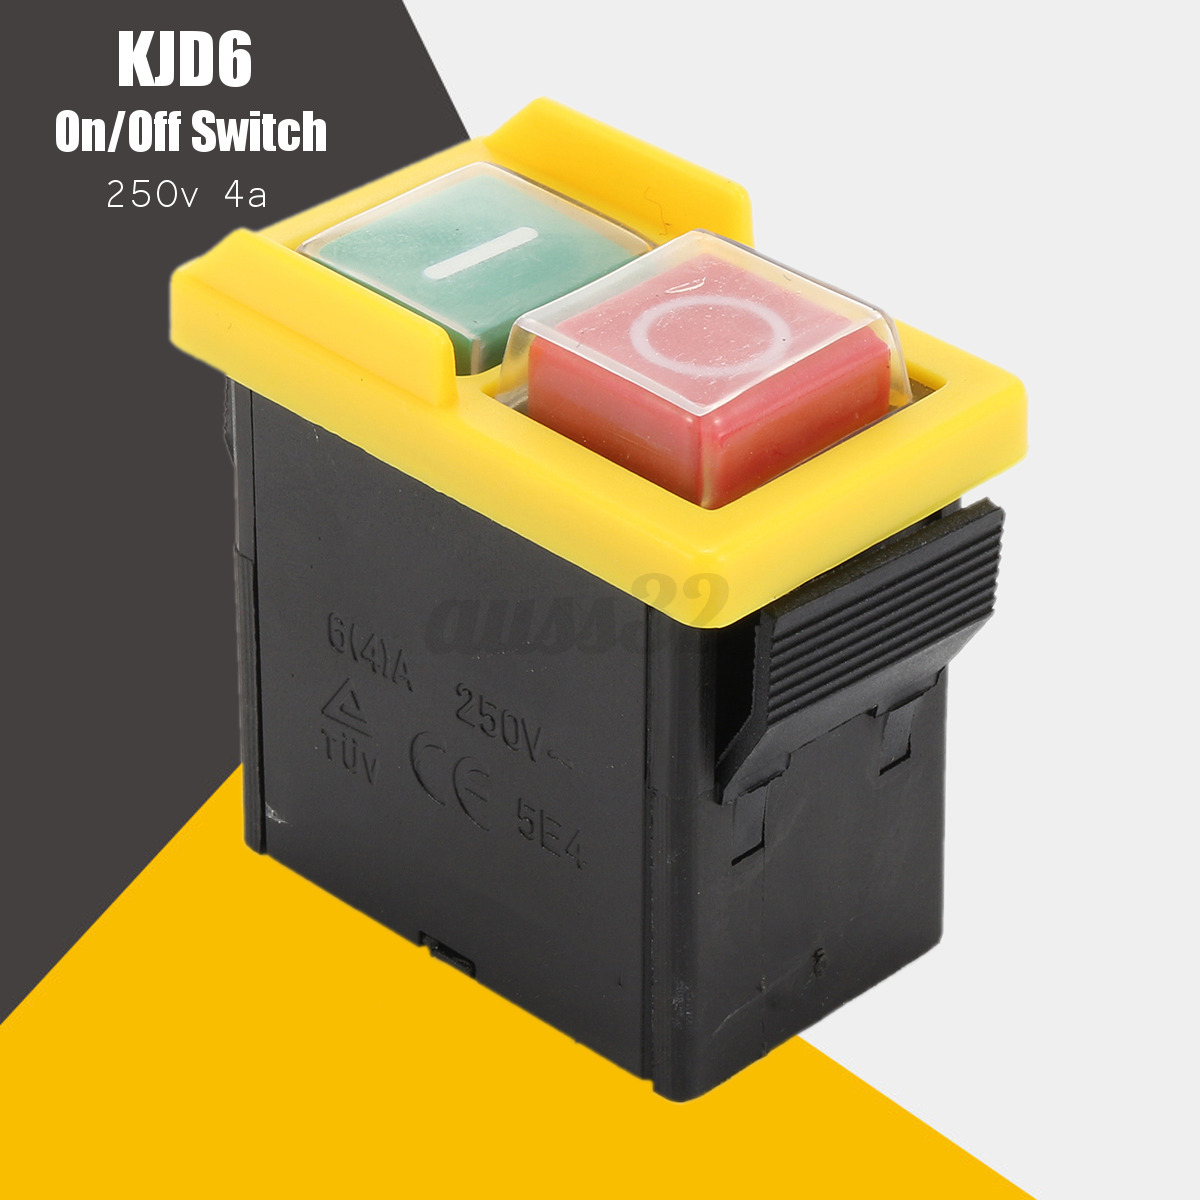 KJD6 250V 4A IP54 5E4 PVC Replacement On/Off Switch ...